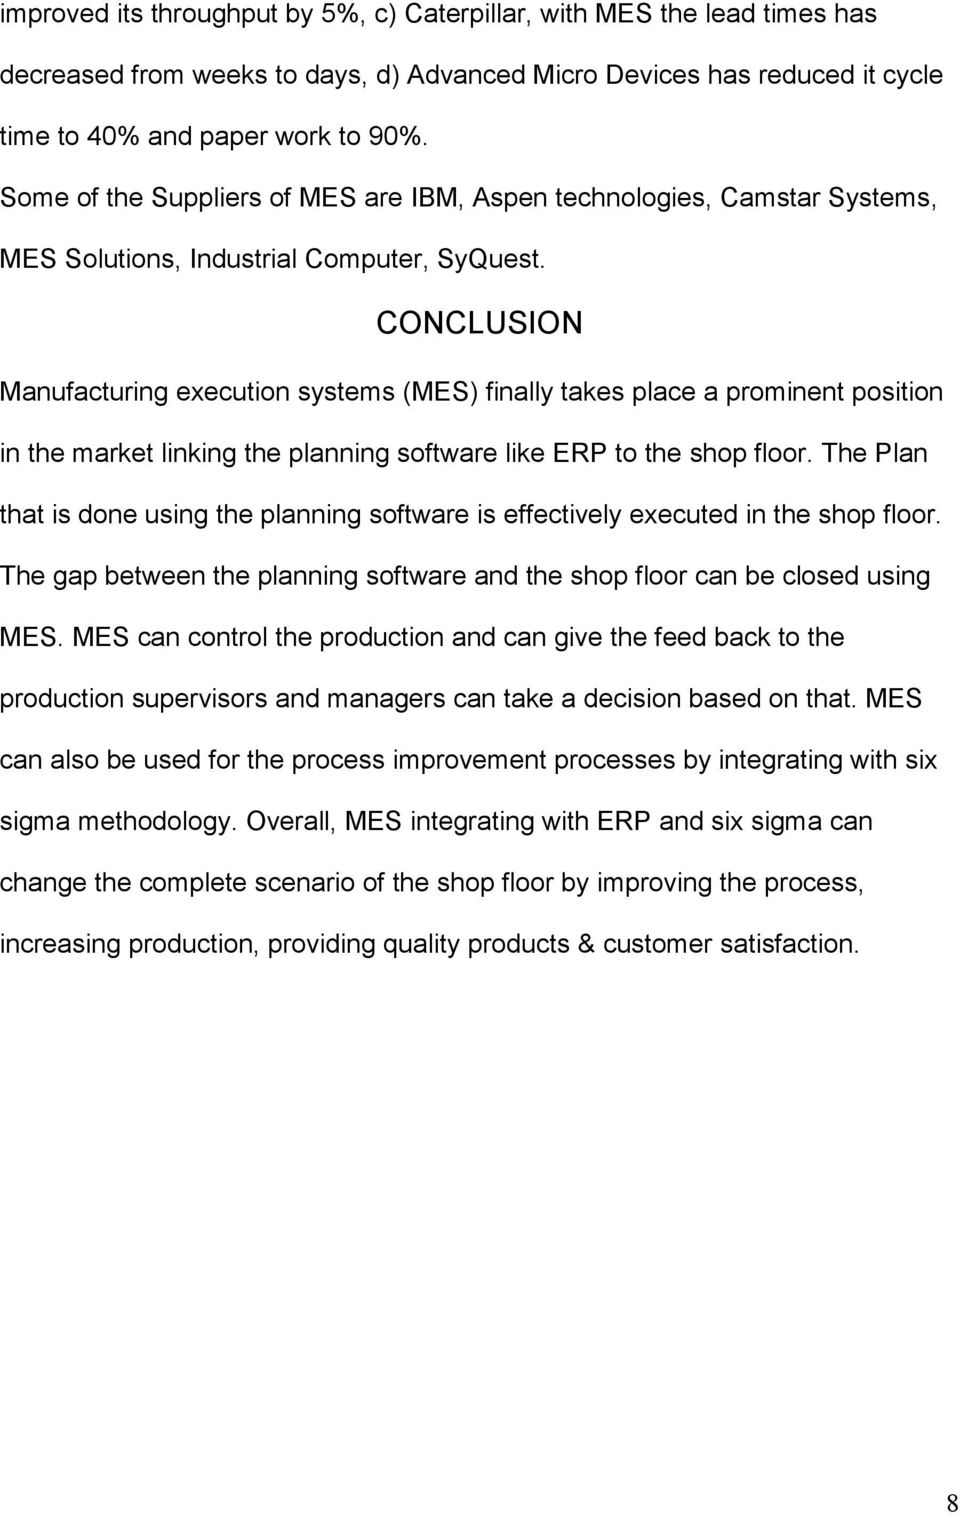 CONCLUSION Manufacturing execution systems (MES) finally takes place a prominent position in the market linking the planning software like ERP to the shop floor.